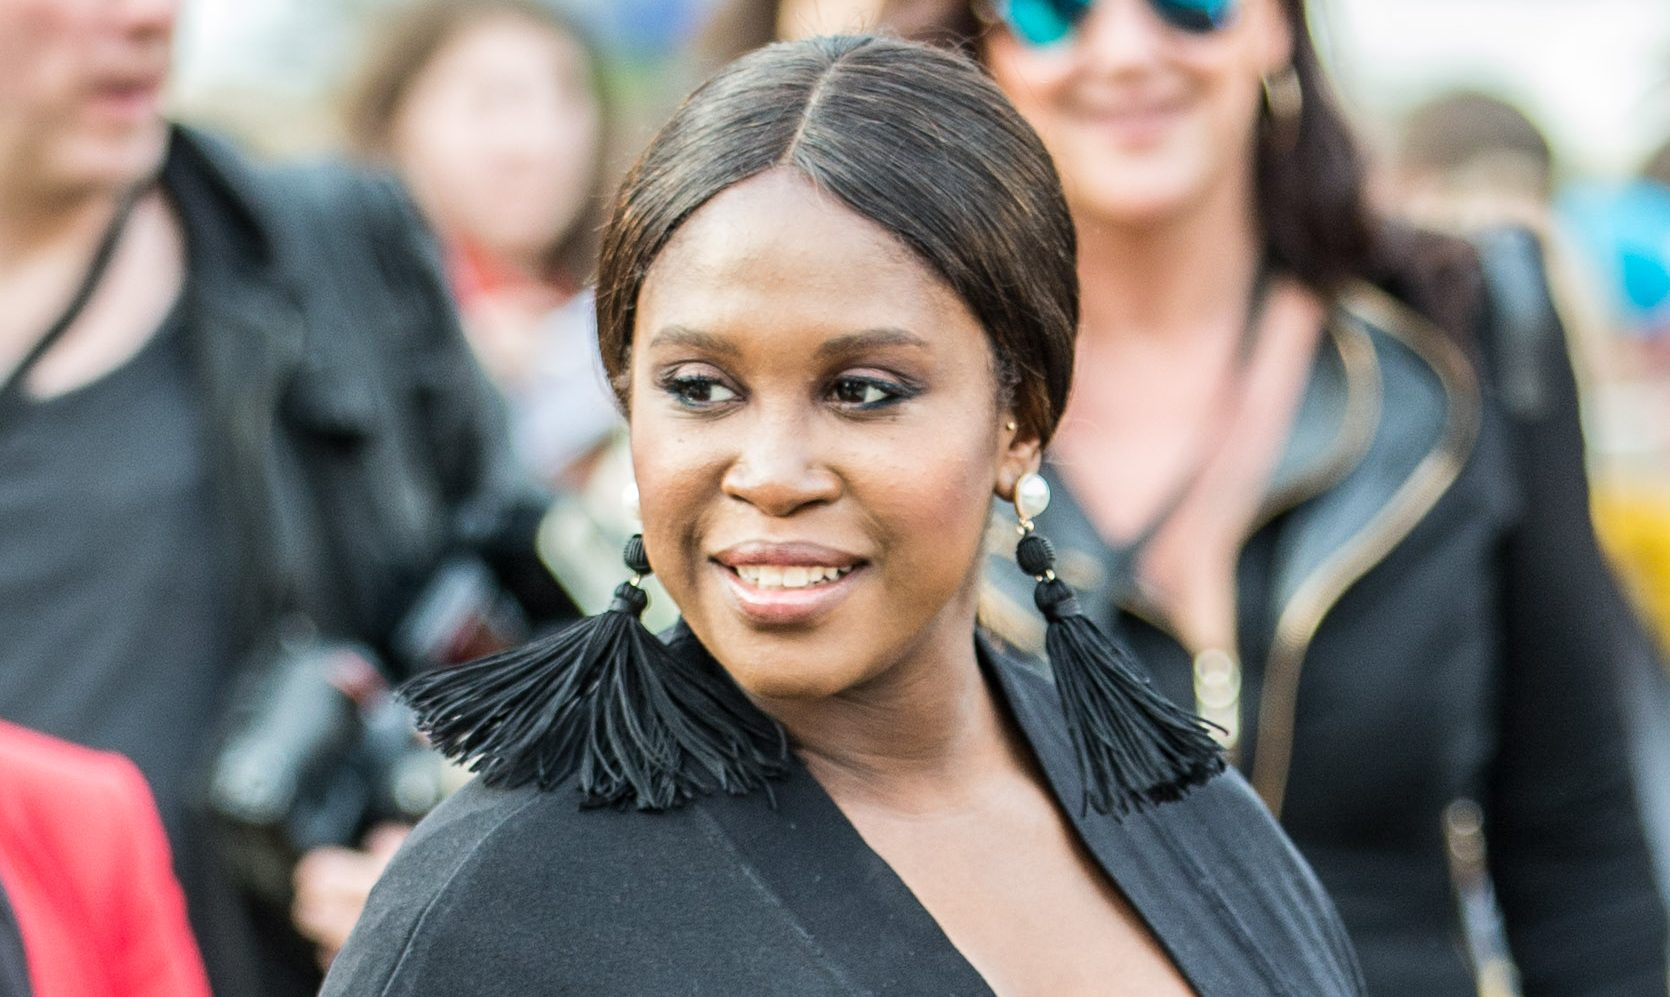 Strictly Come Dancing judge Motsi Mabuse's own relationship 'curse'